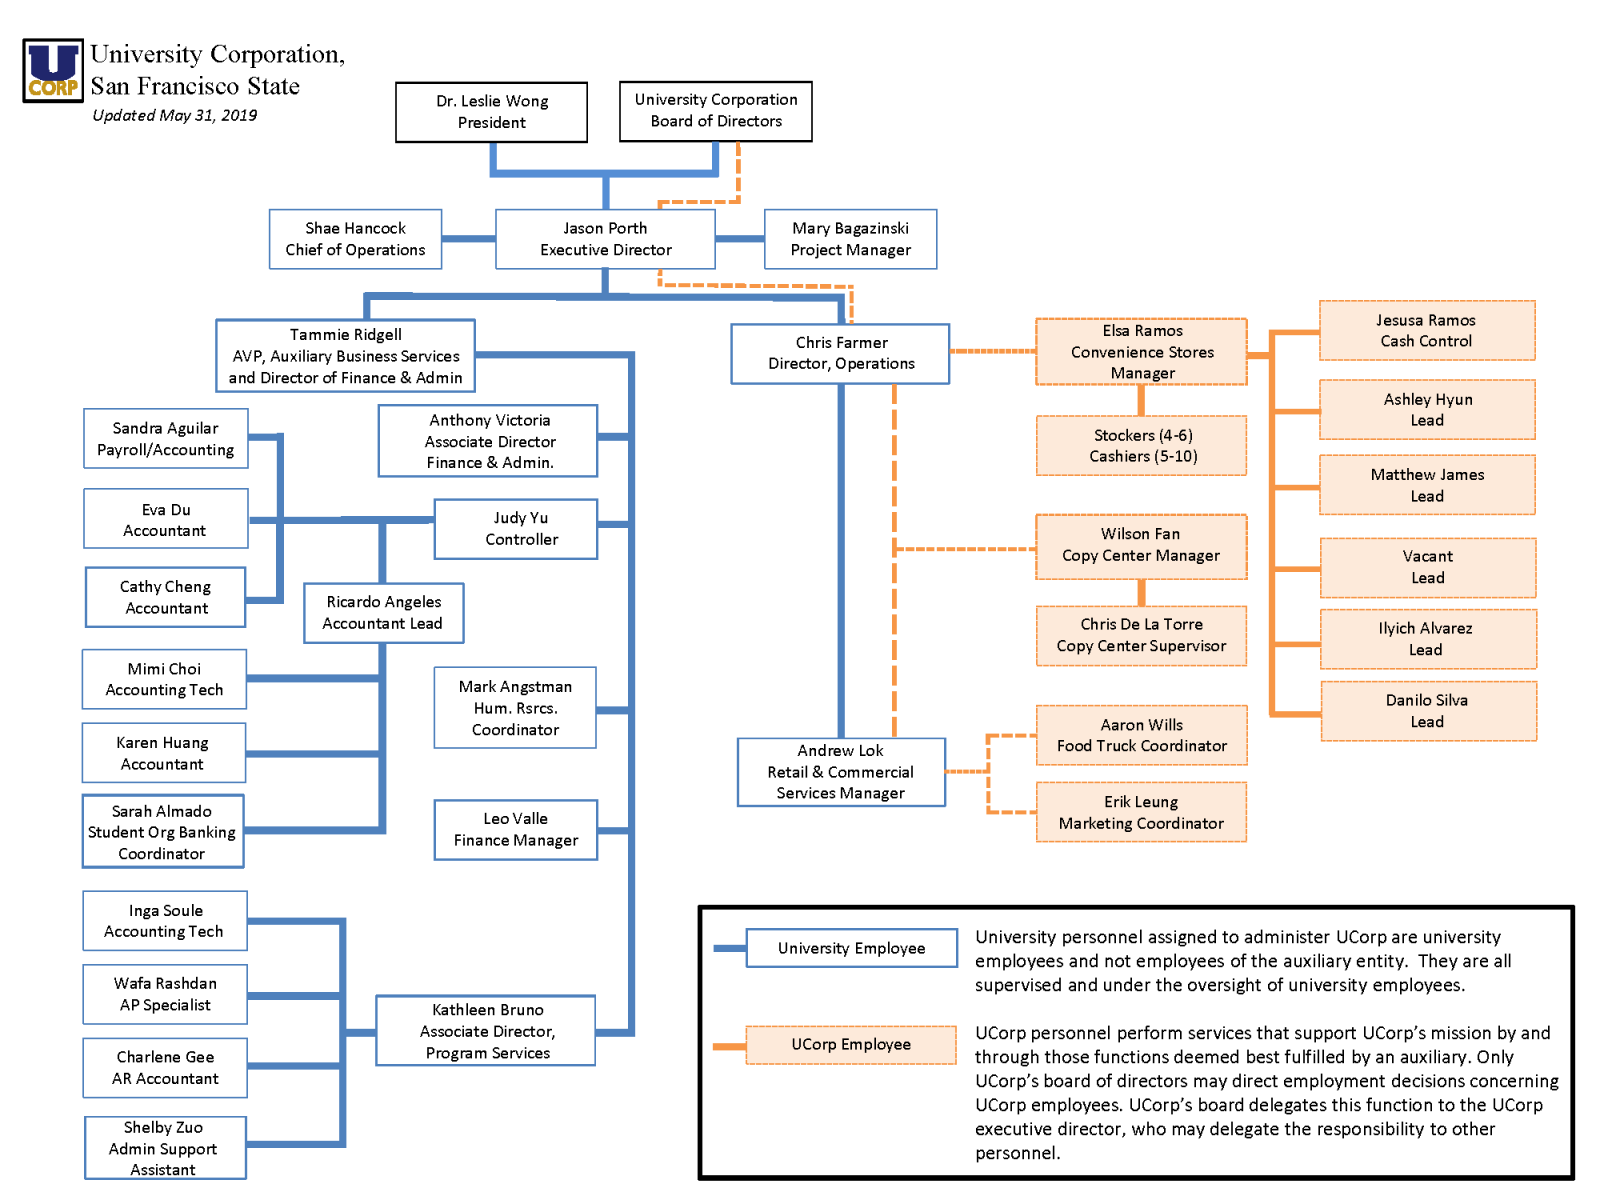 graphical version University Corporation's organizational chart